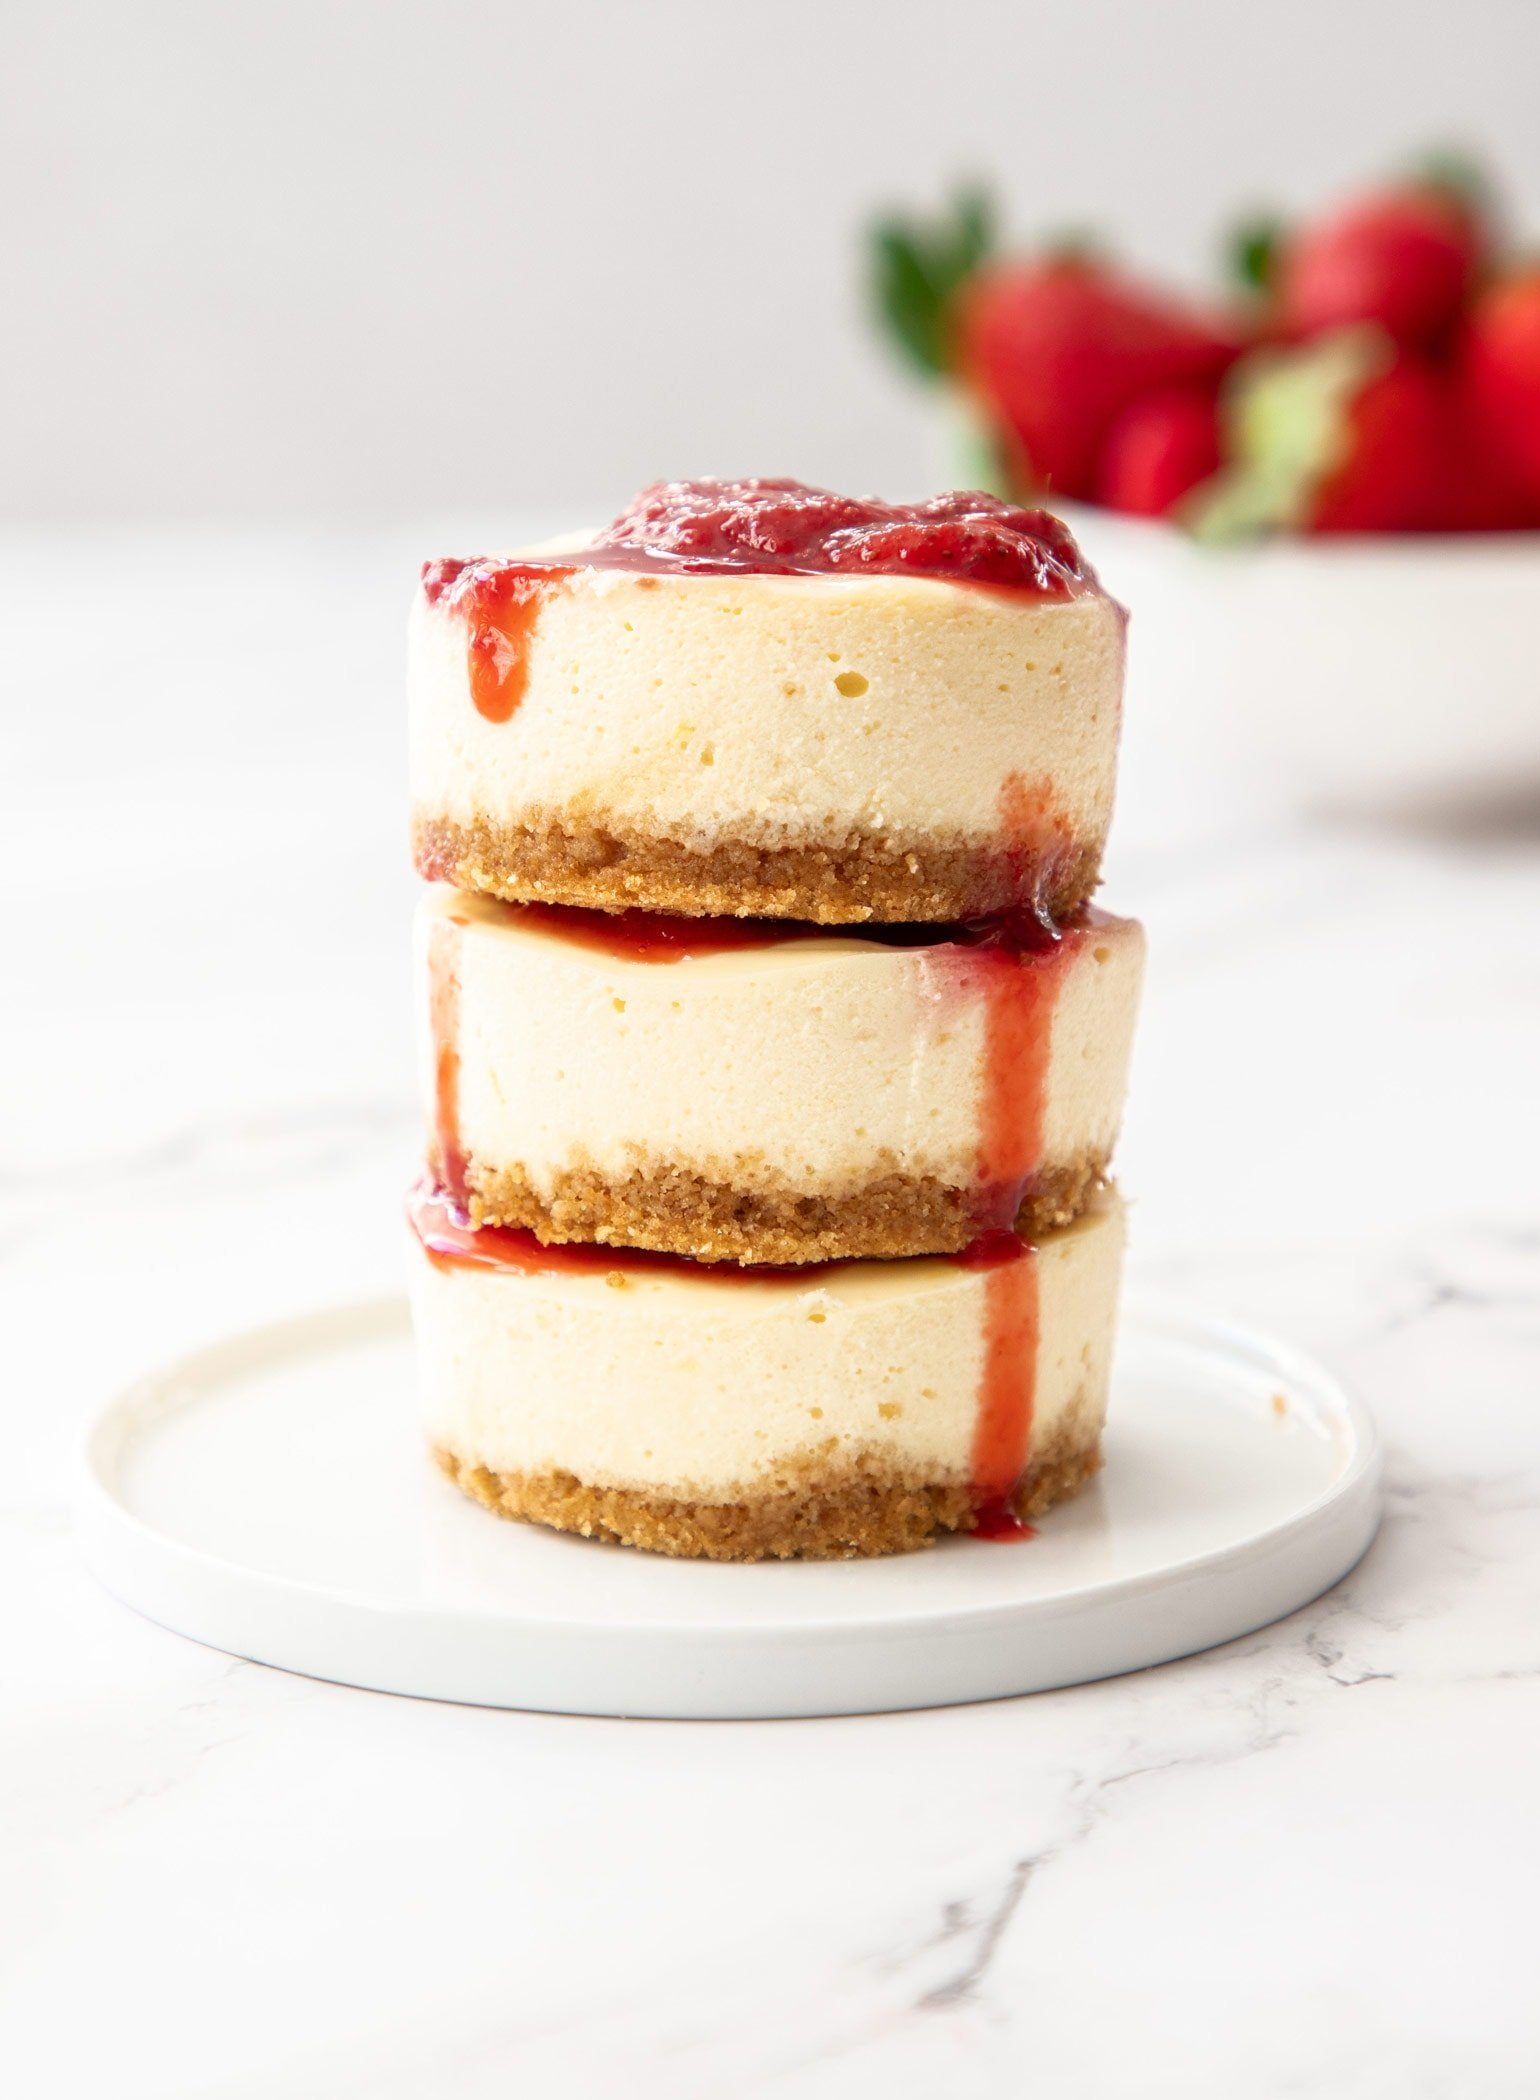 3 mini strawberry cheesecakes stacked on top of each other on a small white plate